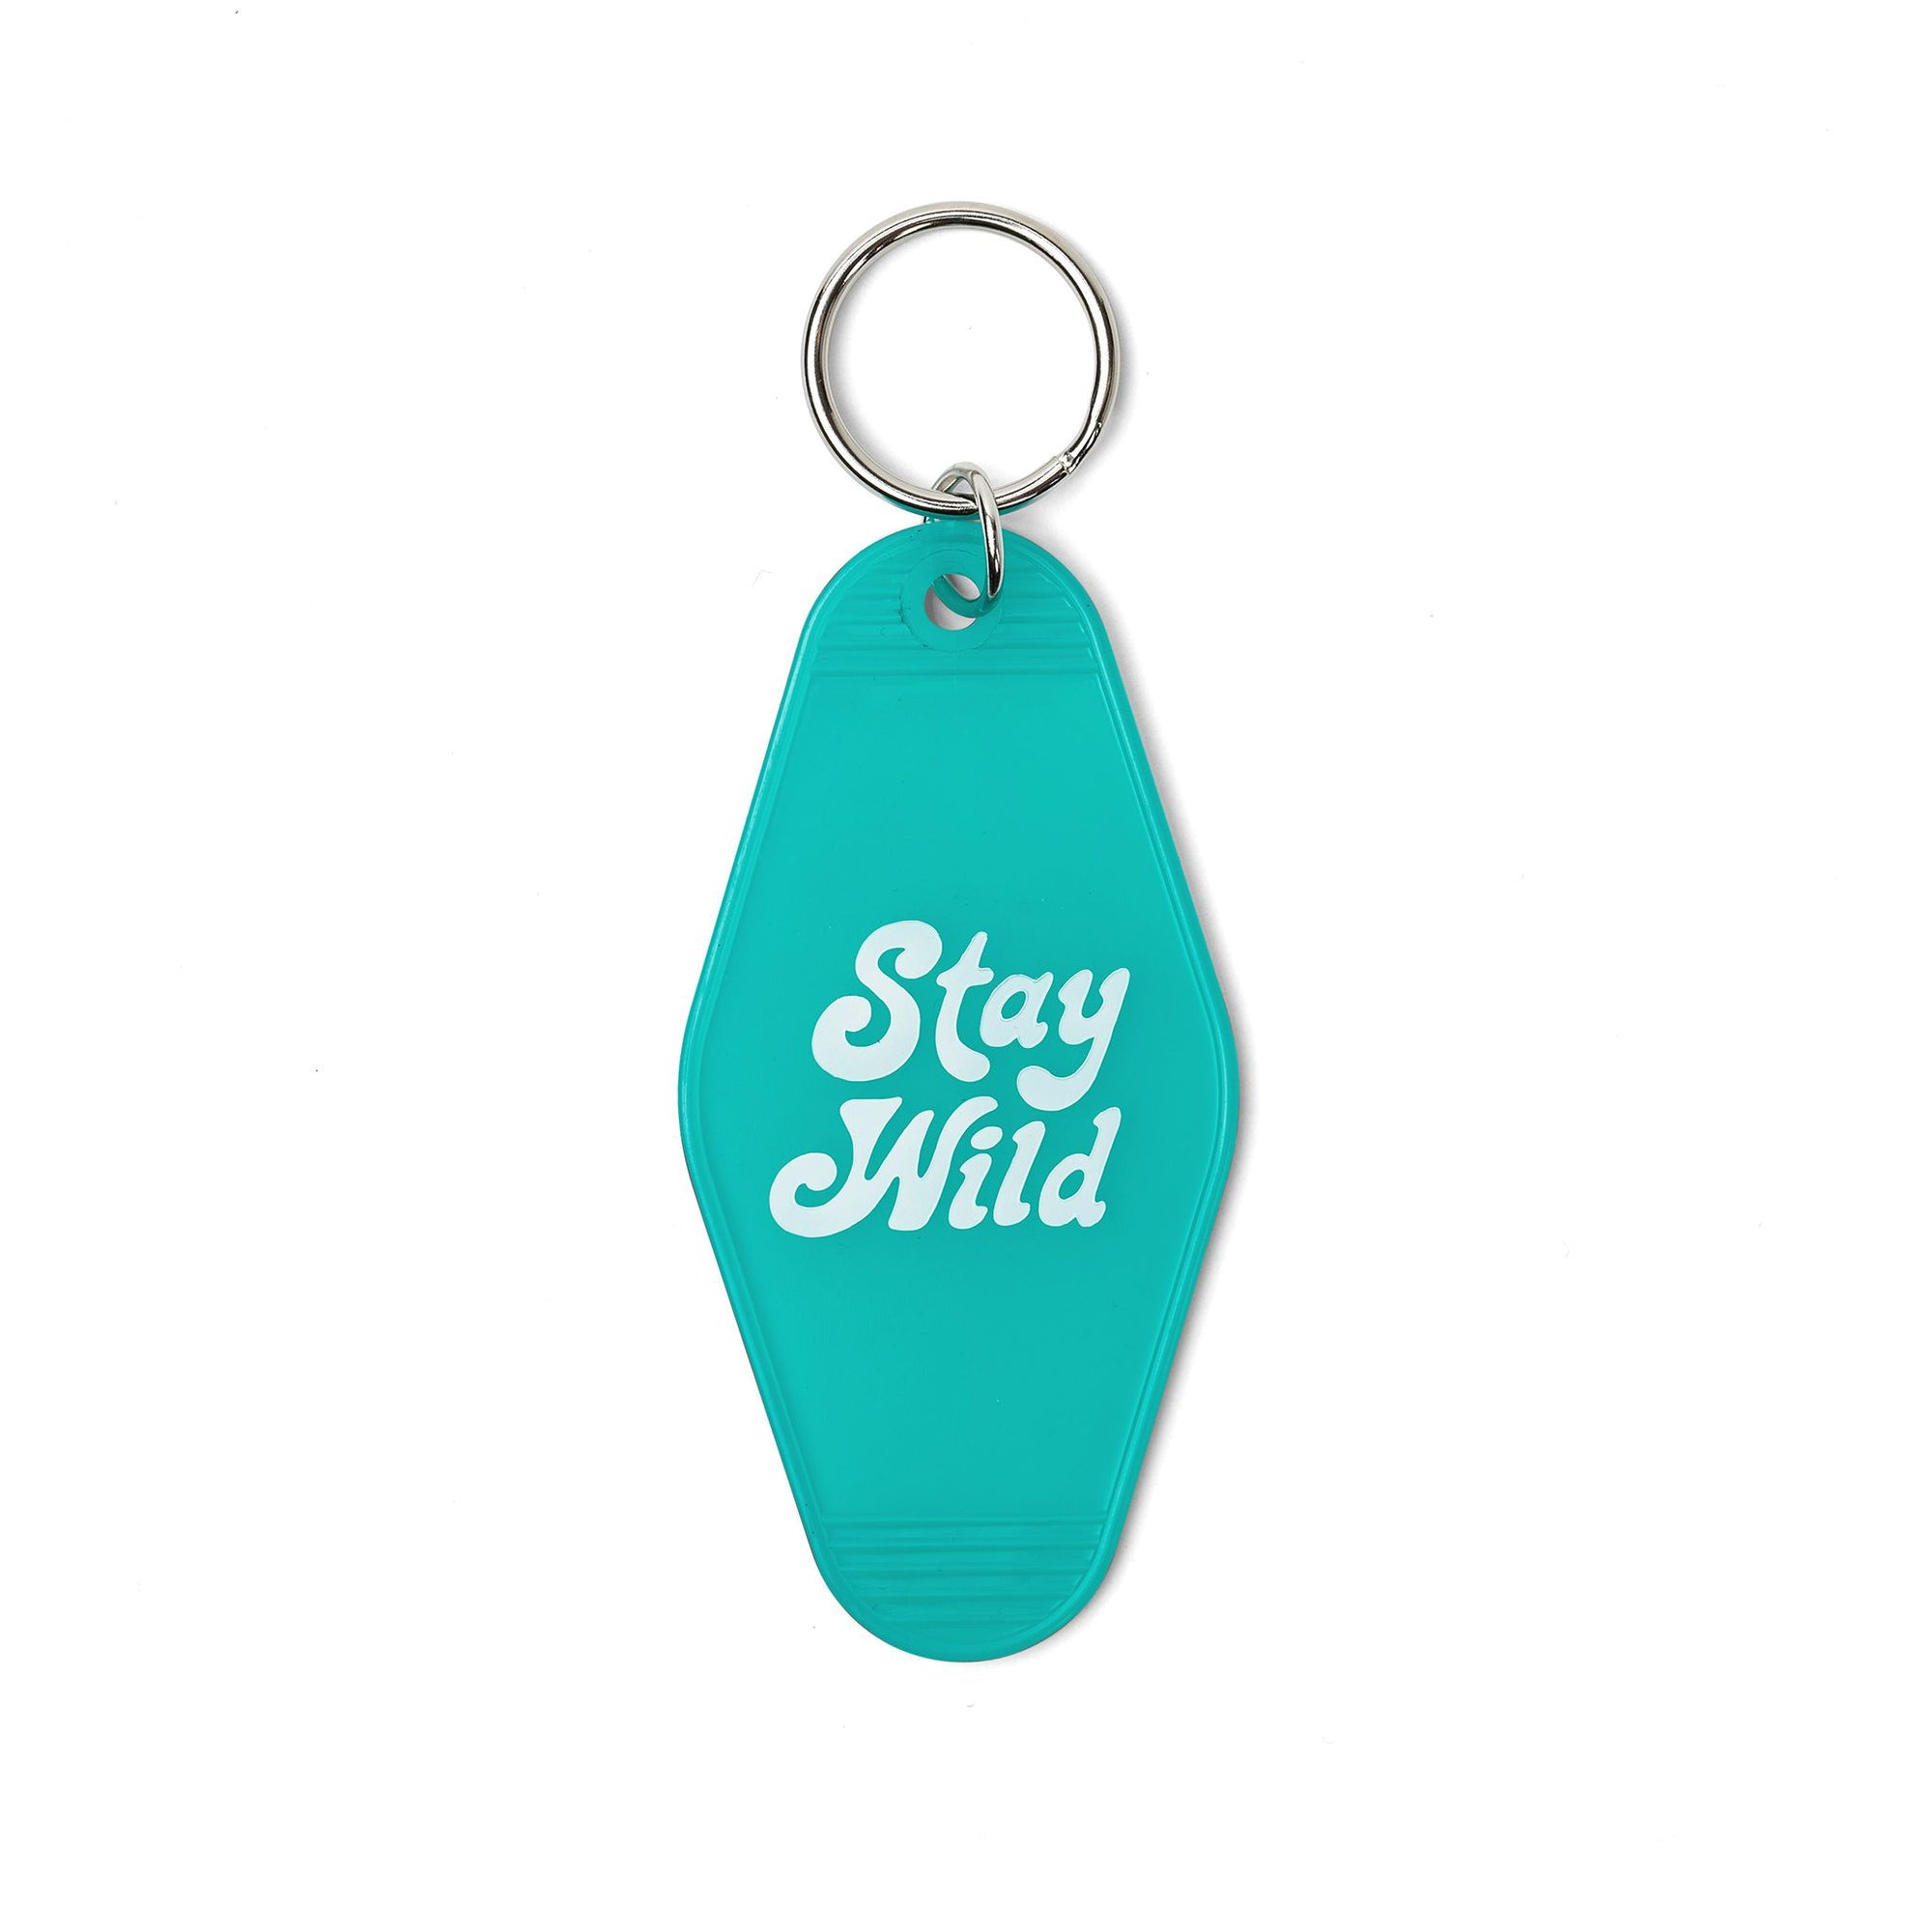 Stay Wild Key Tag